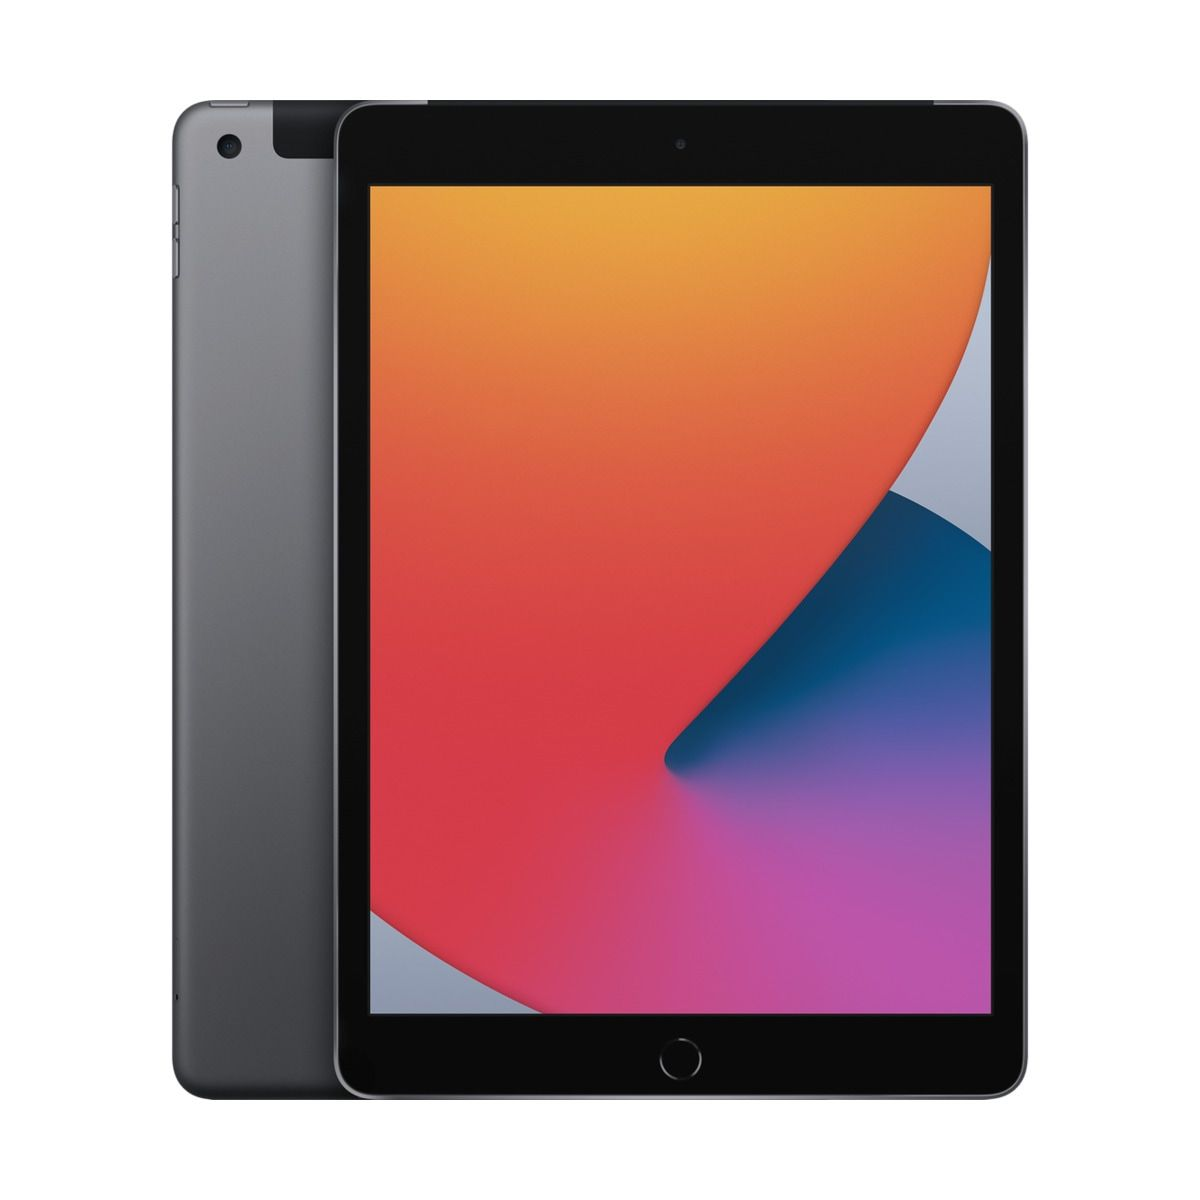 iPad Wi-Fi + Cell 128GB - Space Grey / SK